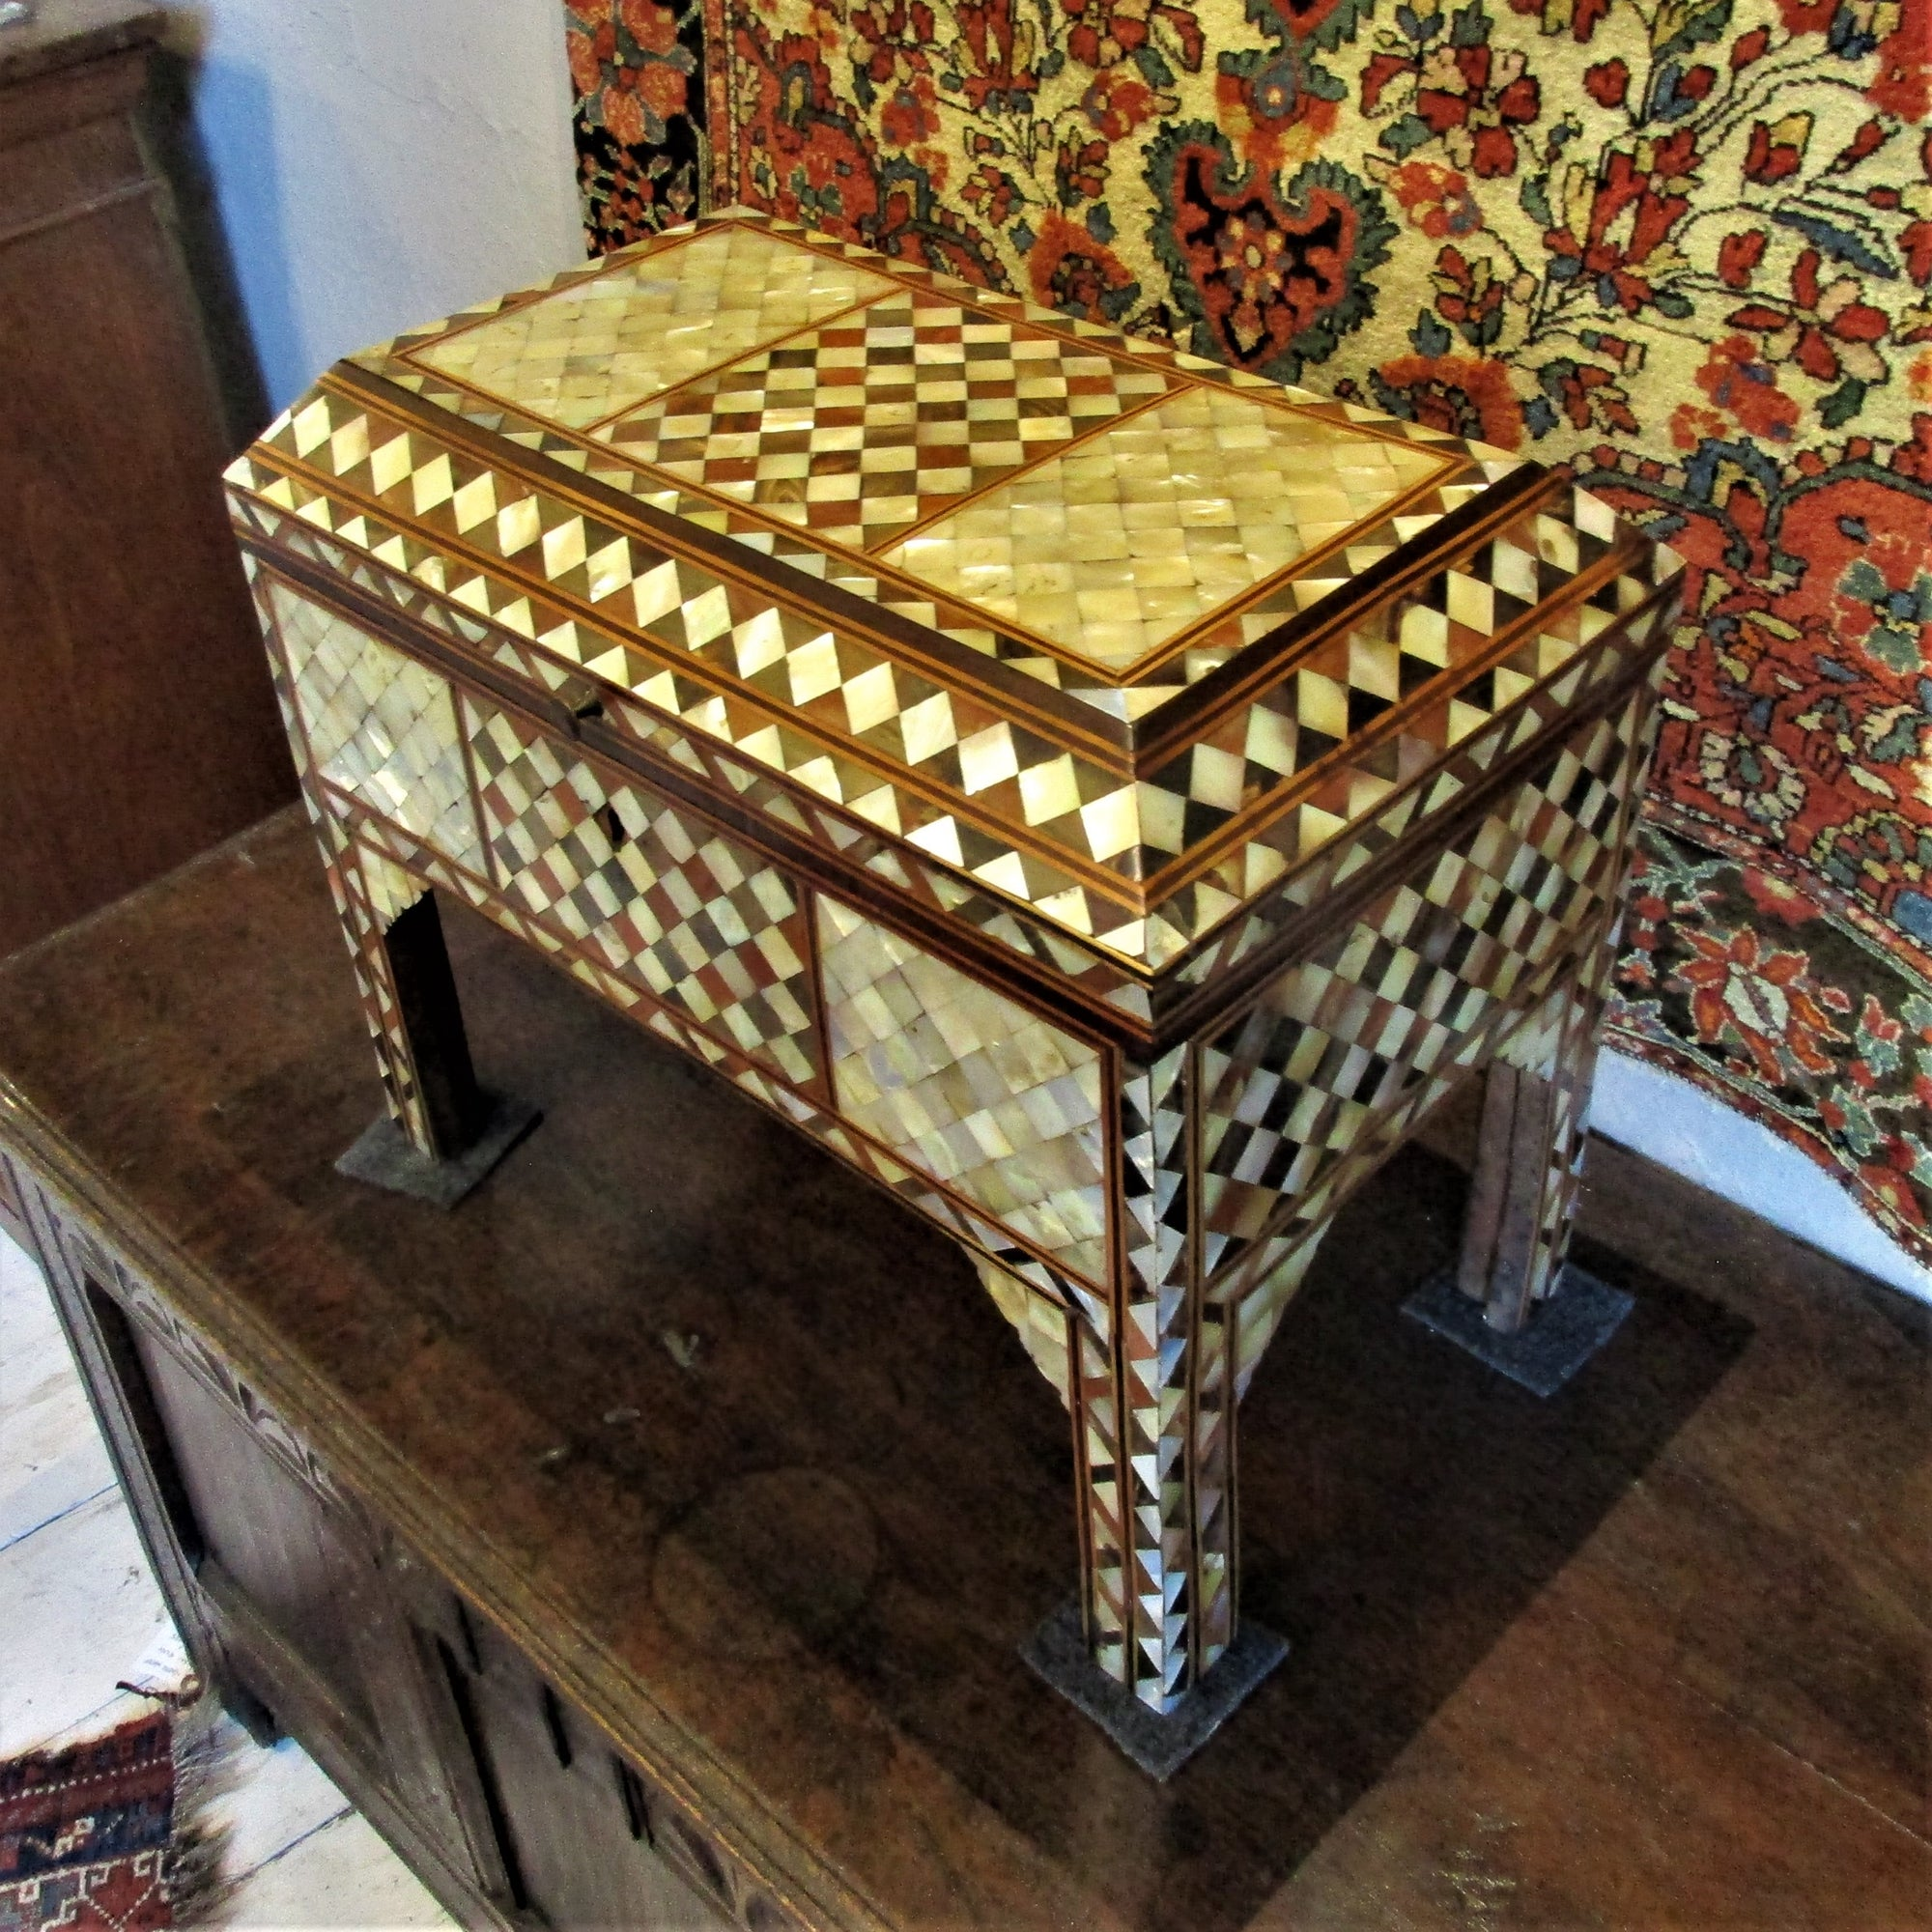 Discover Rare Treasures From The Ottoman Empire Here At Top Banana !